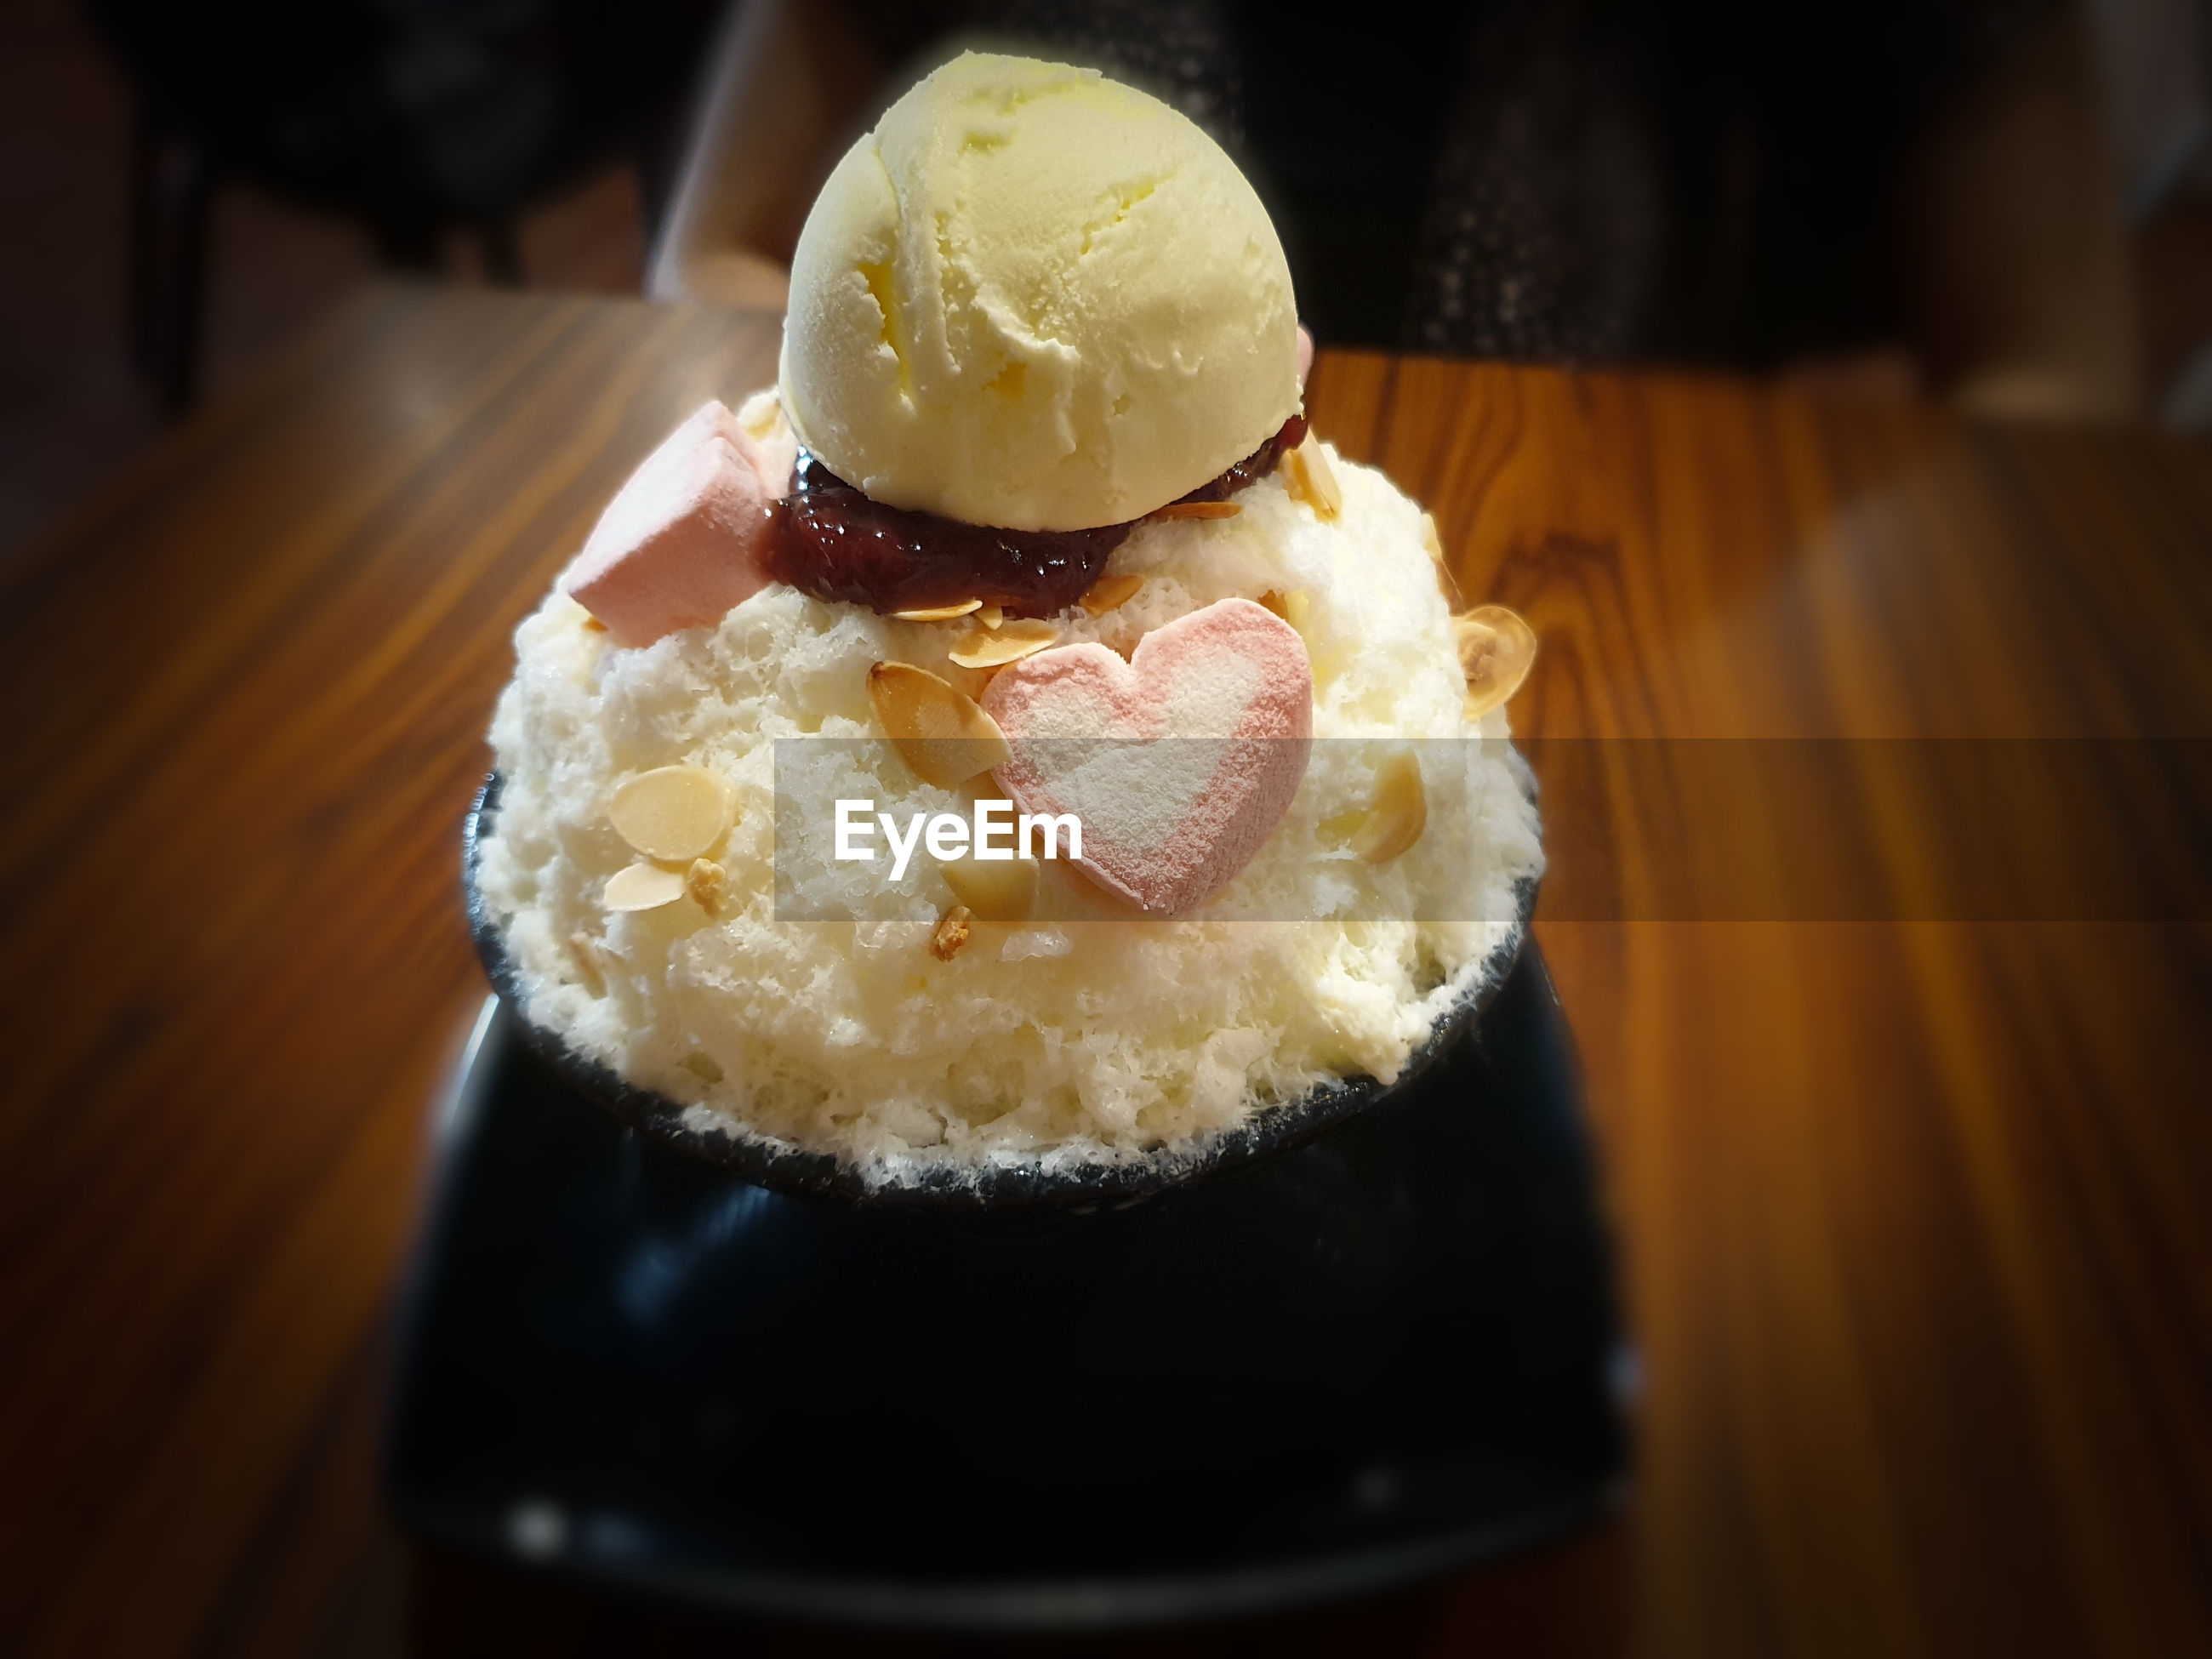 CLOSE-UP OF ICE CREAM IN PLATE